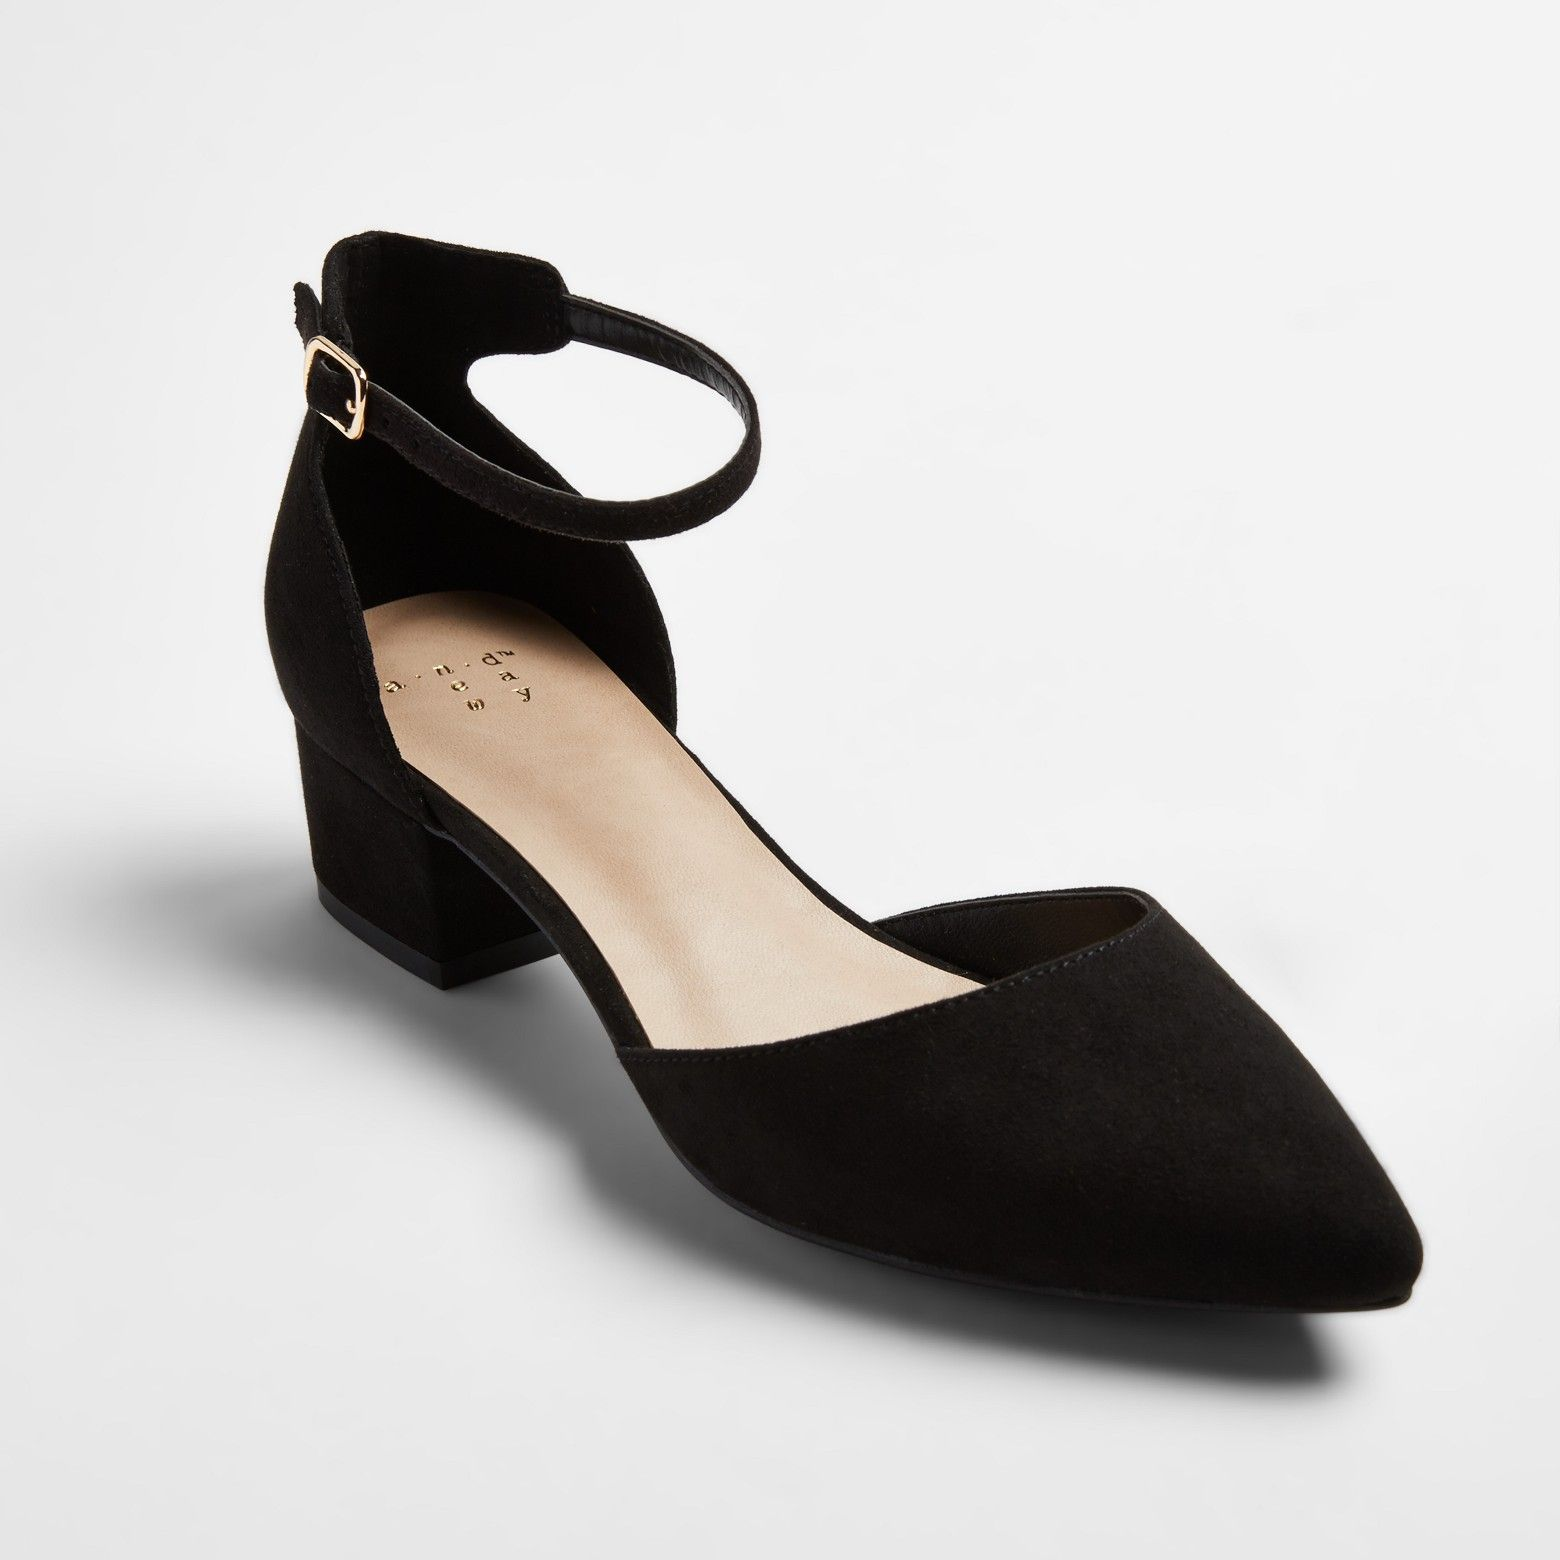 42fb2908db8 Target : Expect More, Pay Less | fashion vision | Low block heel ...